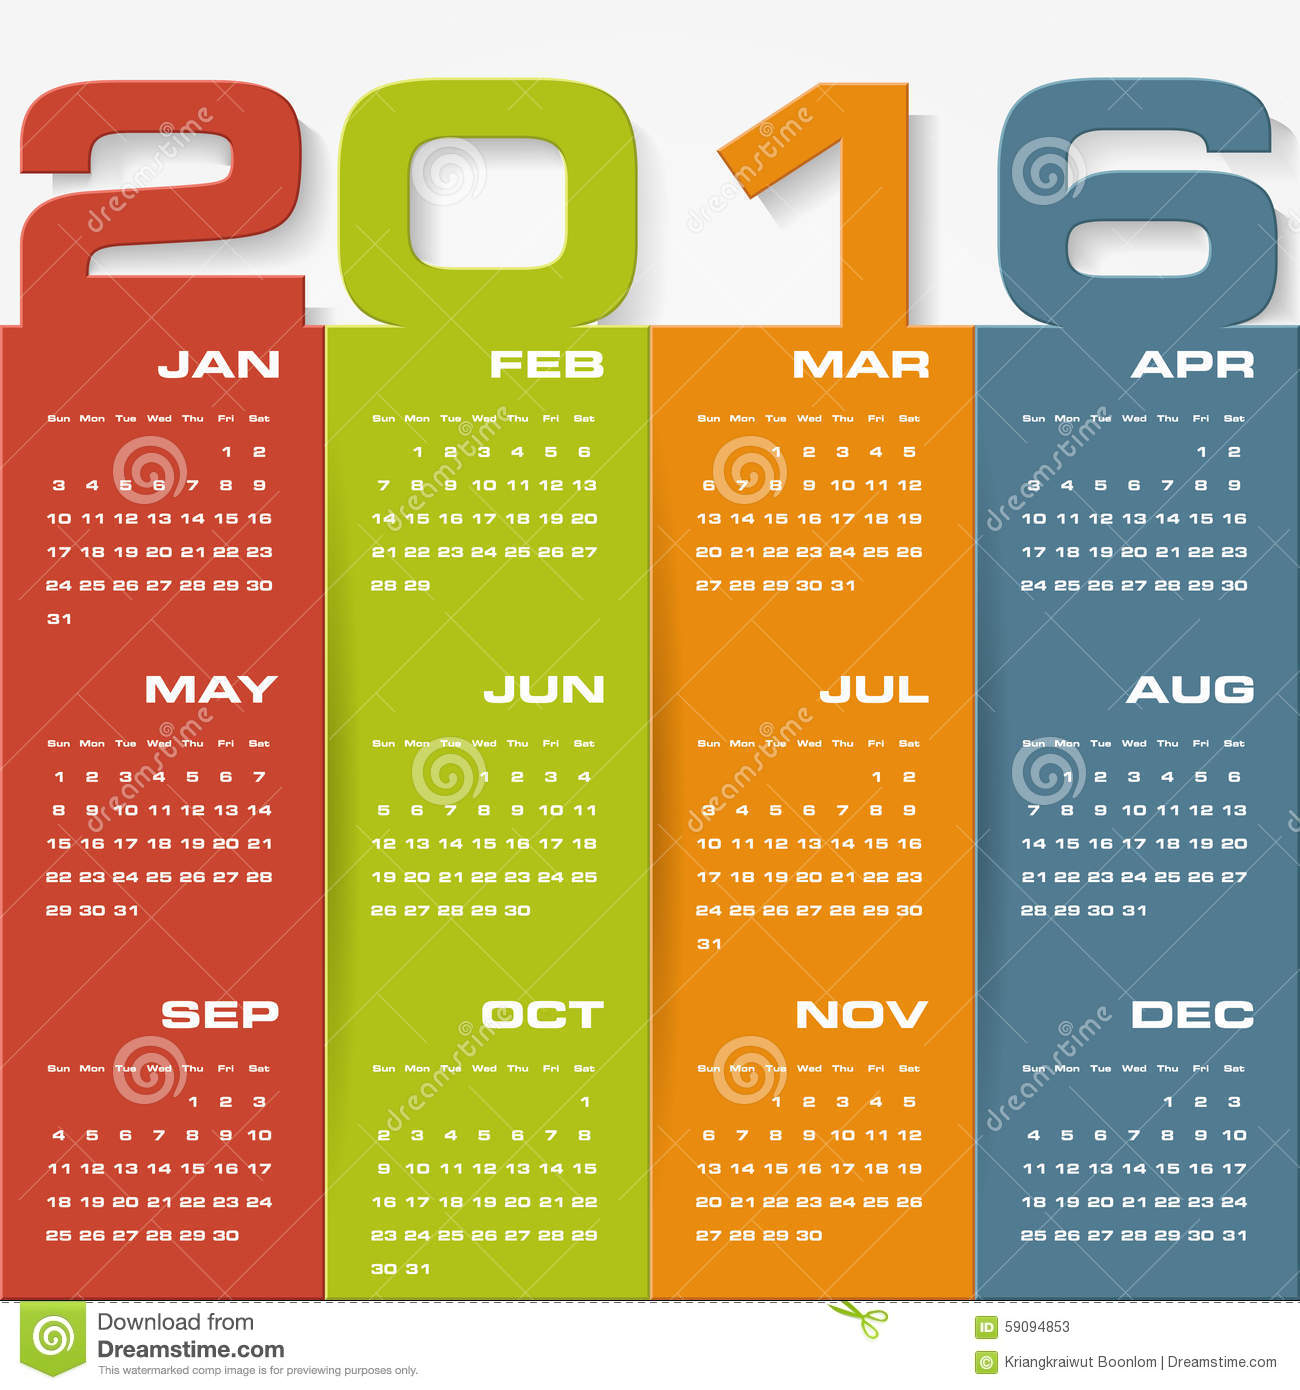 Calendar Design Vector Free Download : Simple design calendar year vector template